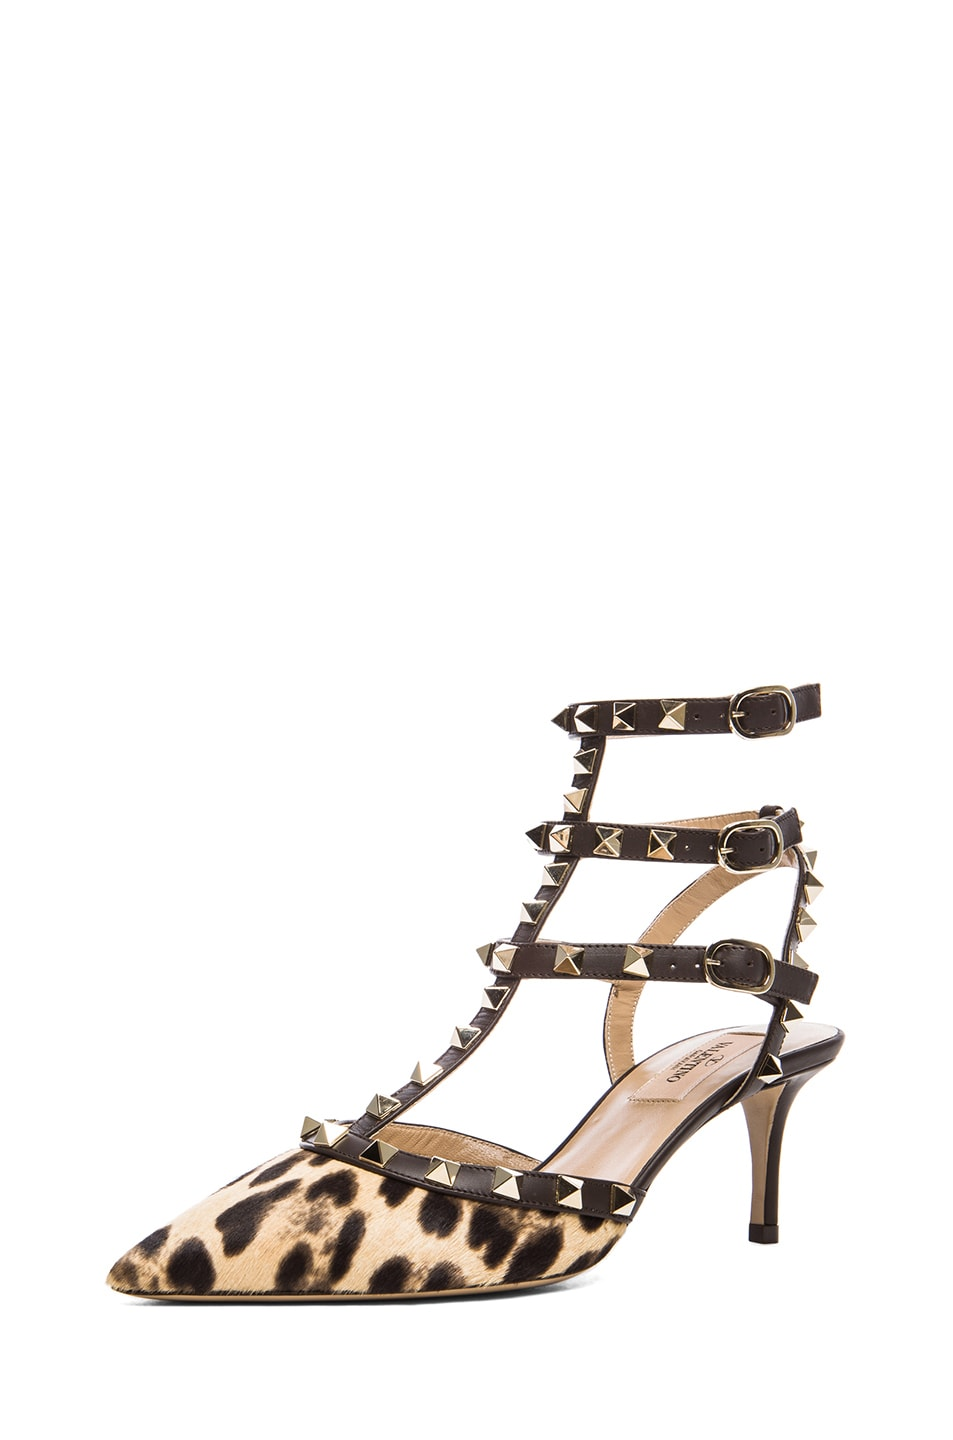 Image 2 of Valentino Rockstud Leather & Calf Hair Slingbacks T.65 in Leopard